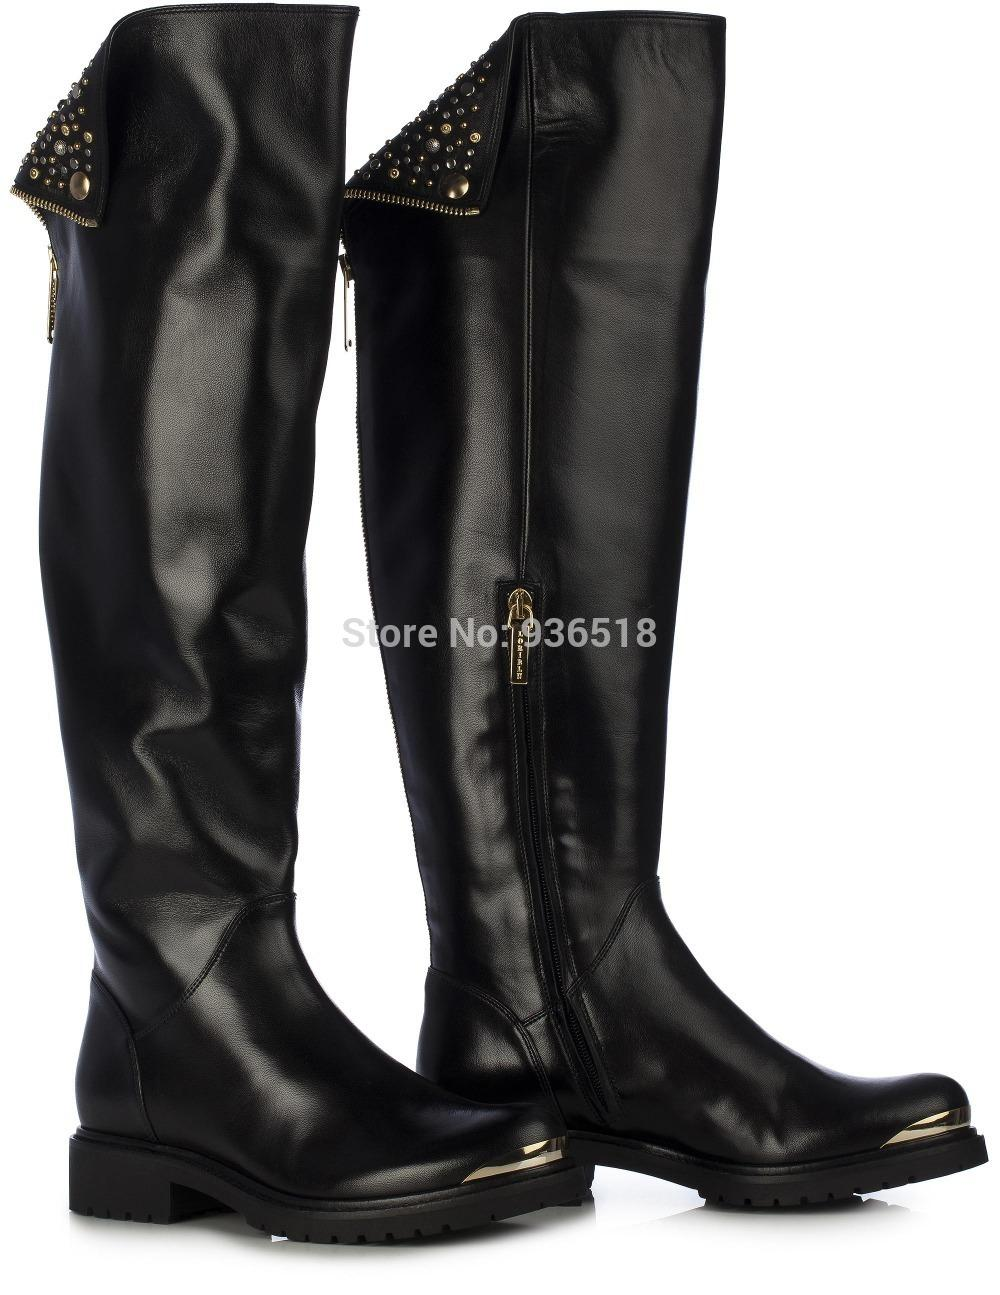 Black Winter Boots Cheap | NATIONAL SHERIFFS' ASSOCIATION